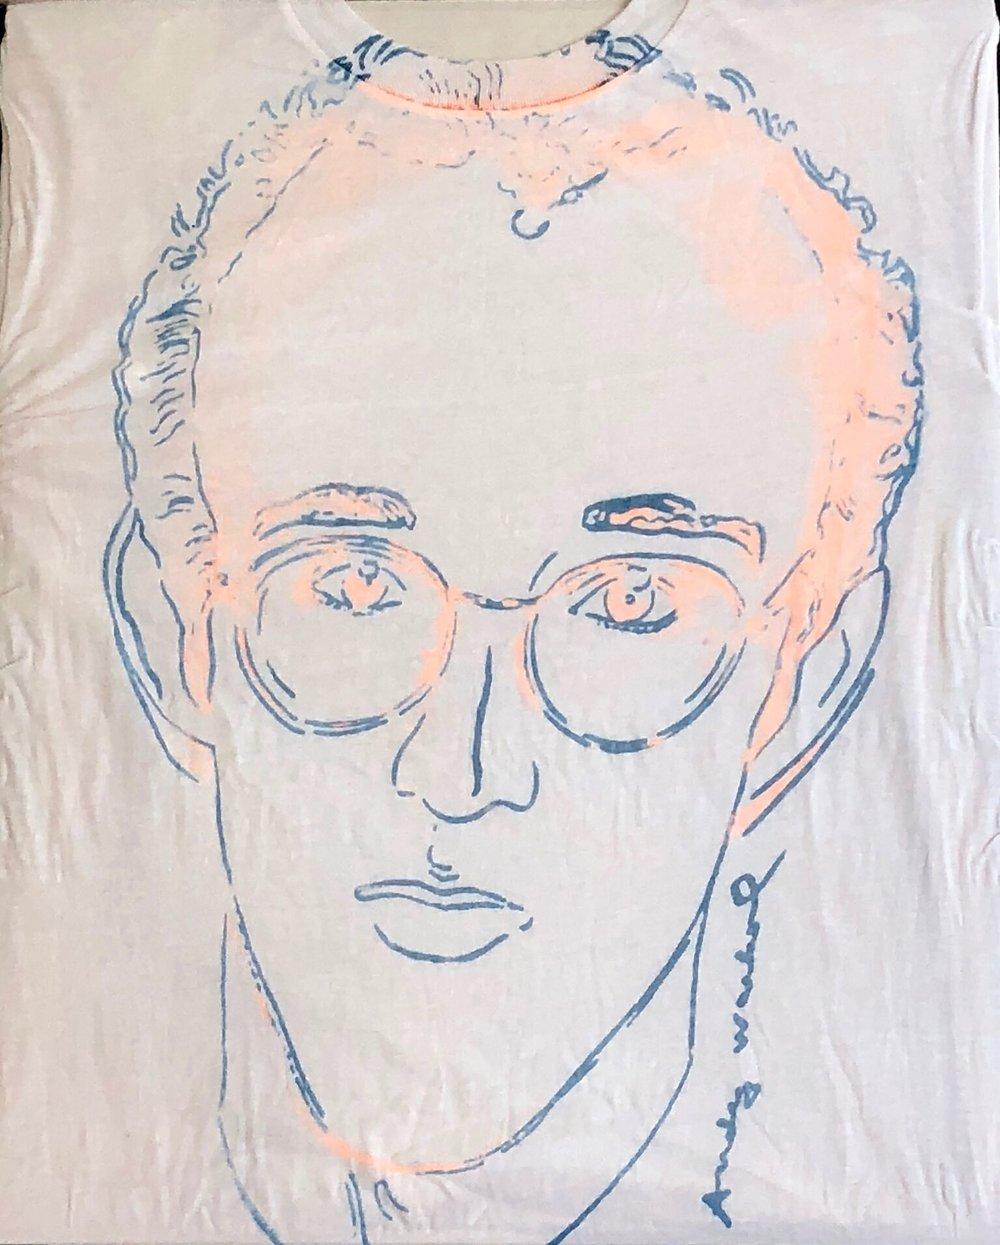 Keith Haring Screenprint on T-Shirt, ca. 1986